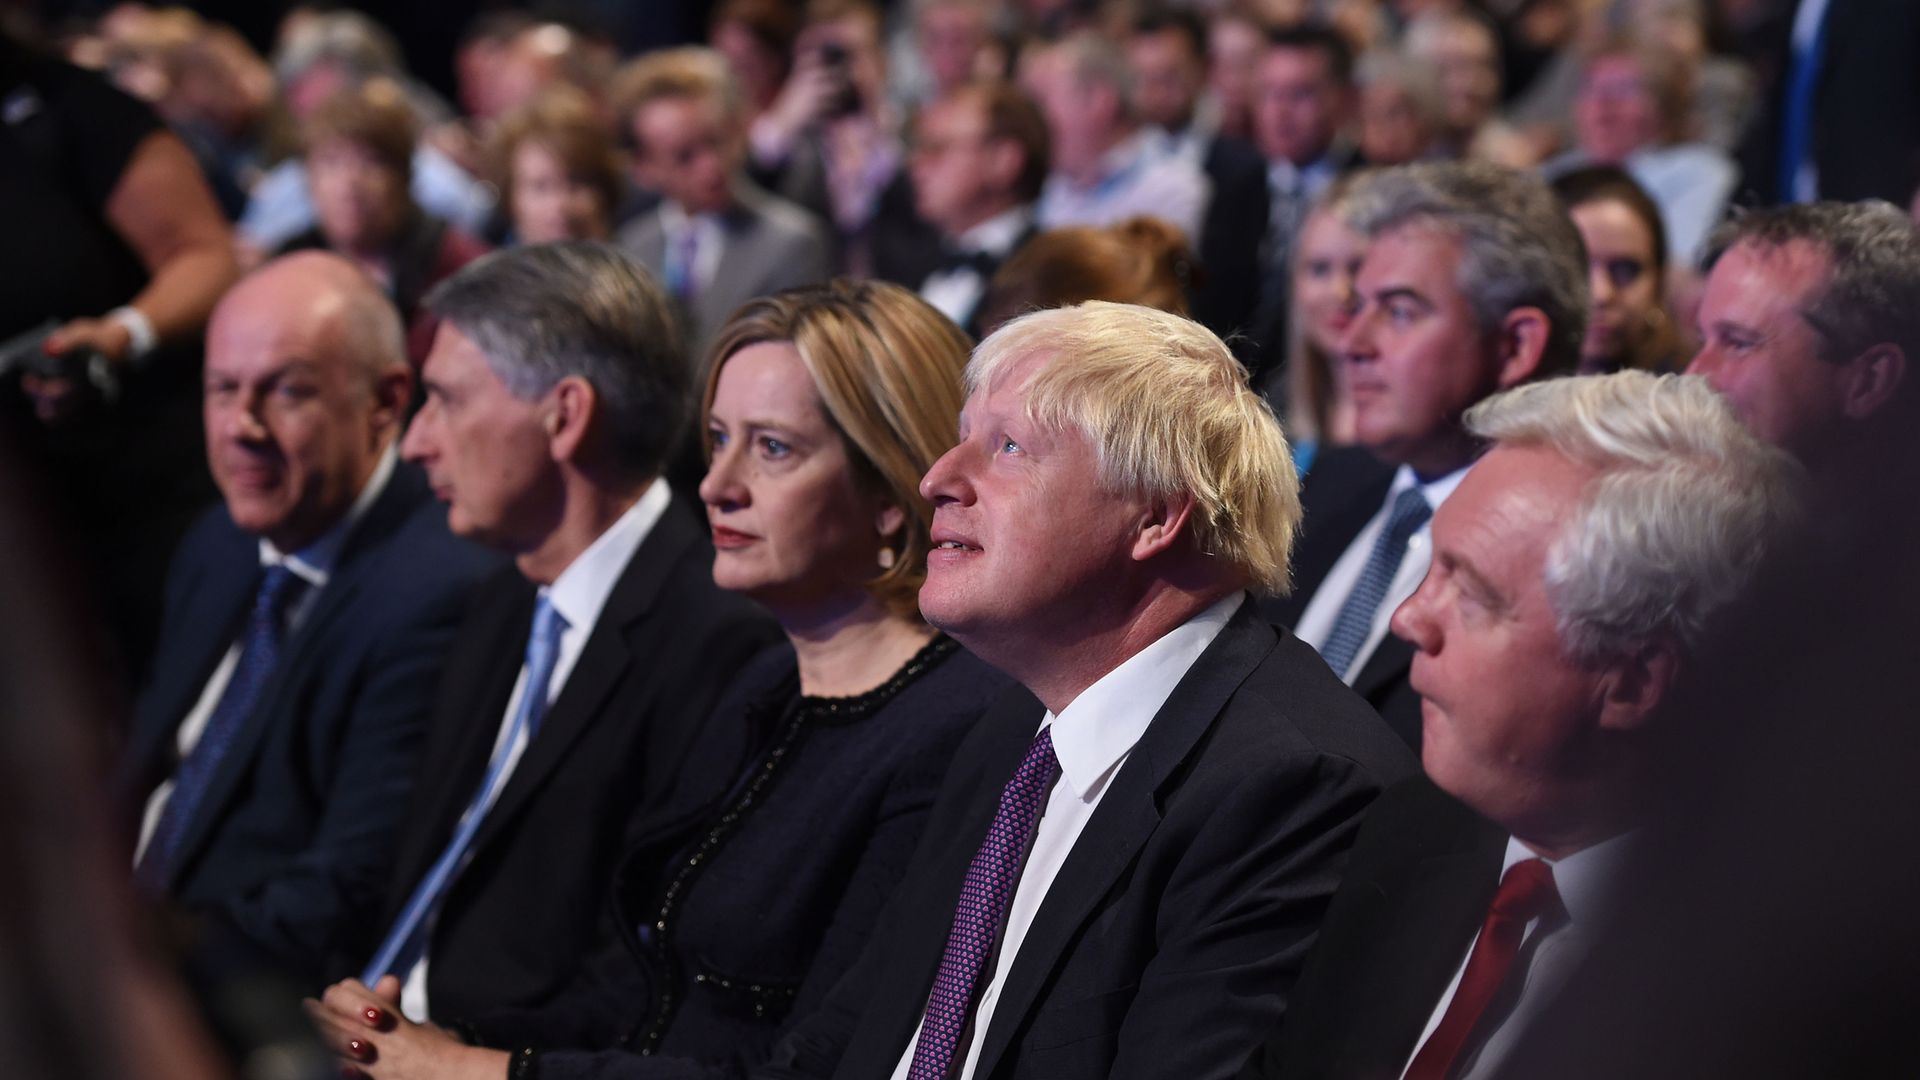 Former home secretary Amber Rudd (L) and Boris Johnson at a Conservative Party Conference at the Manchester Central Convention Complex in Manchester - Credit: PA